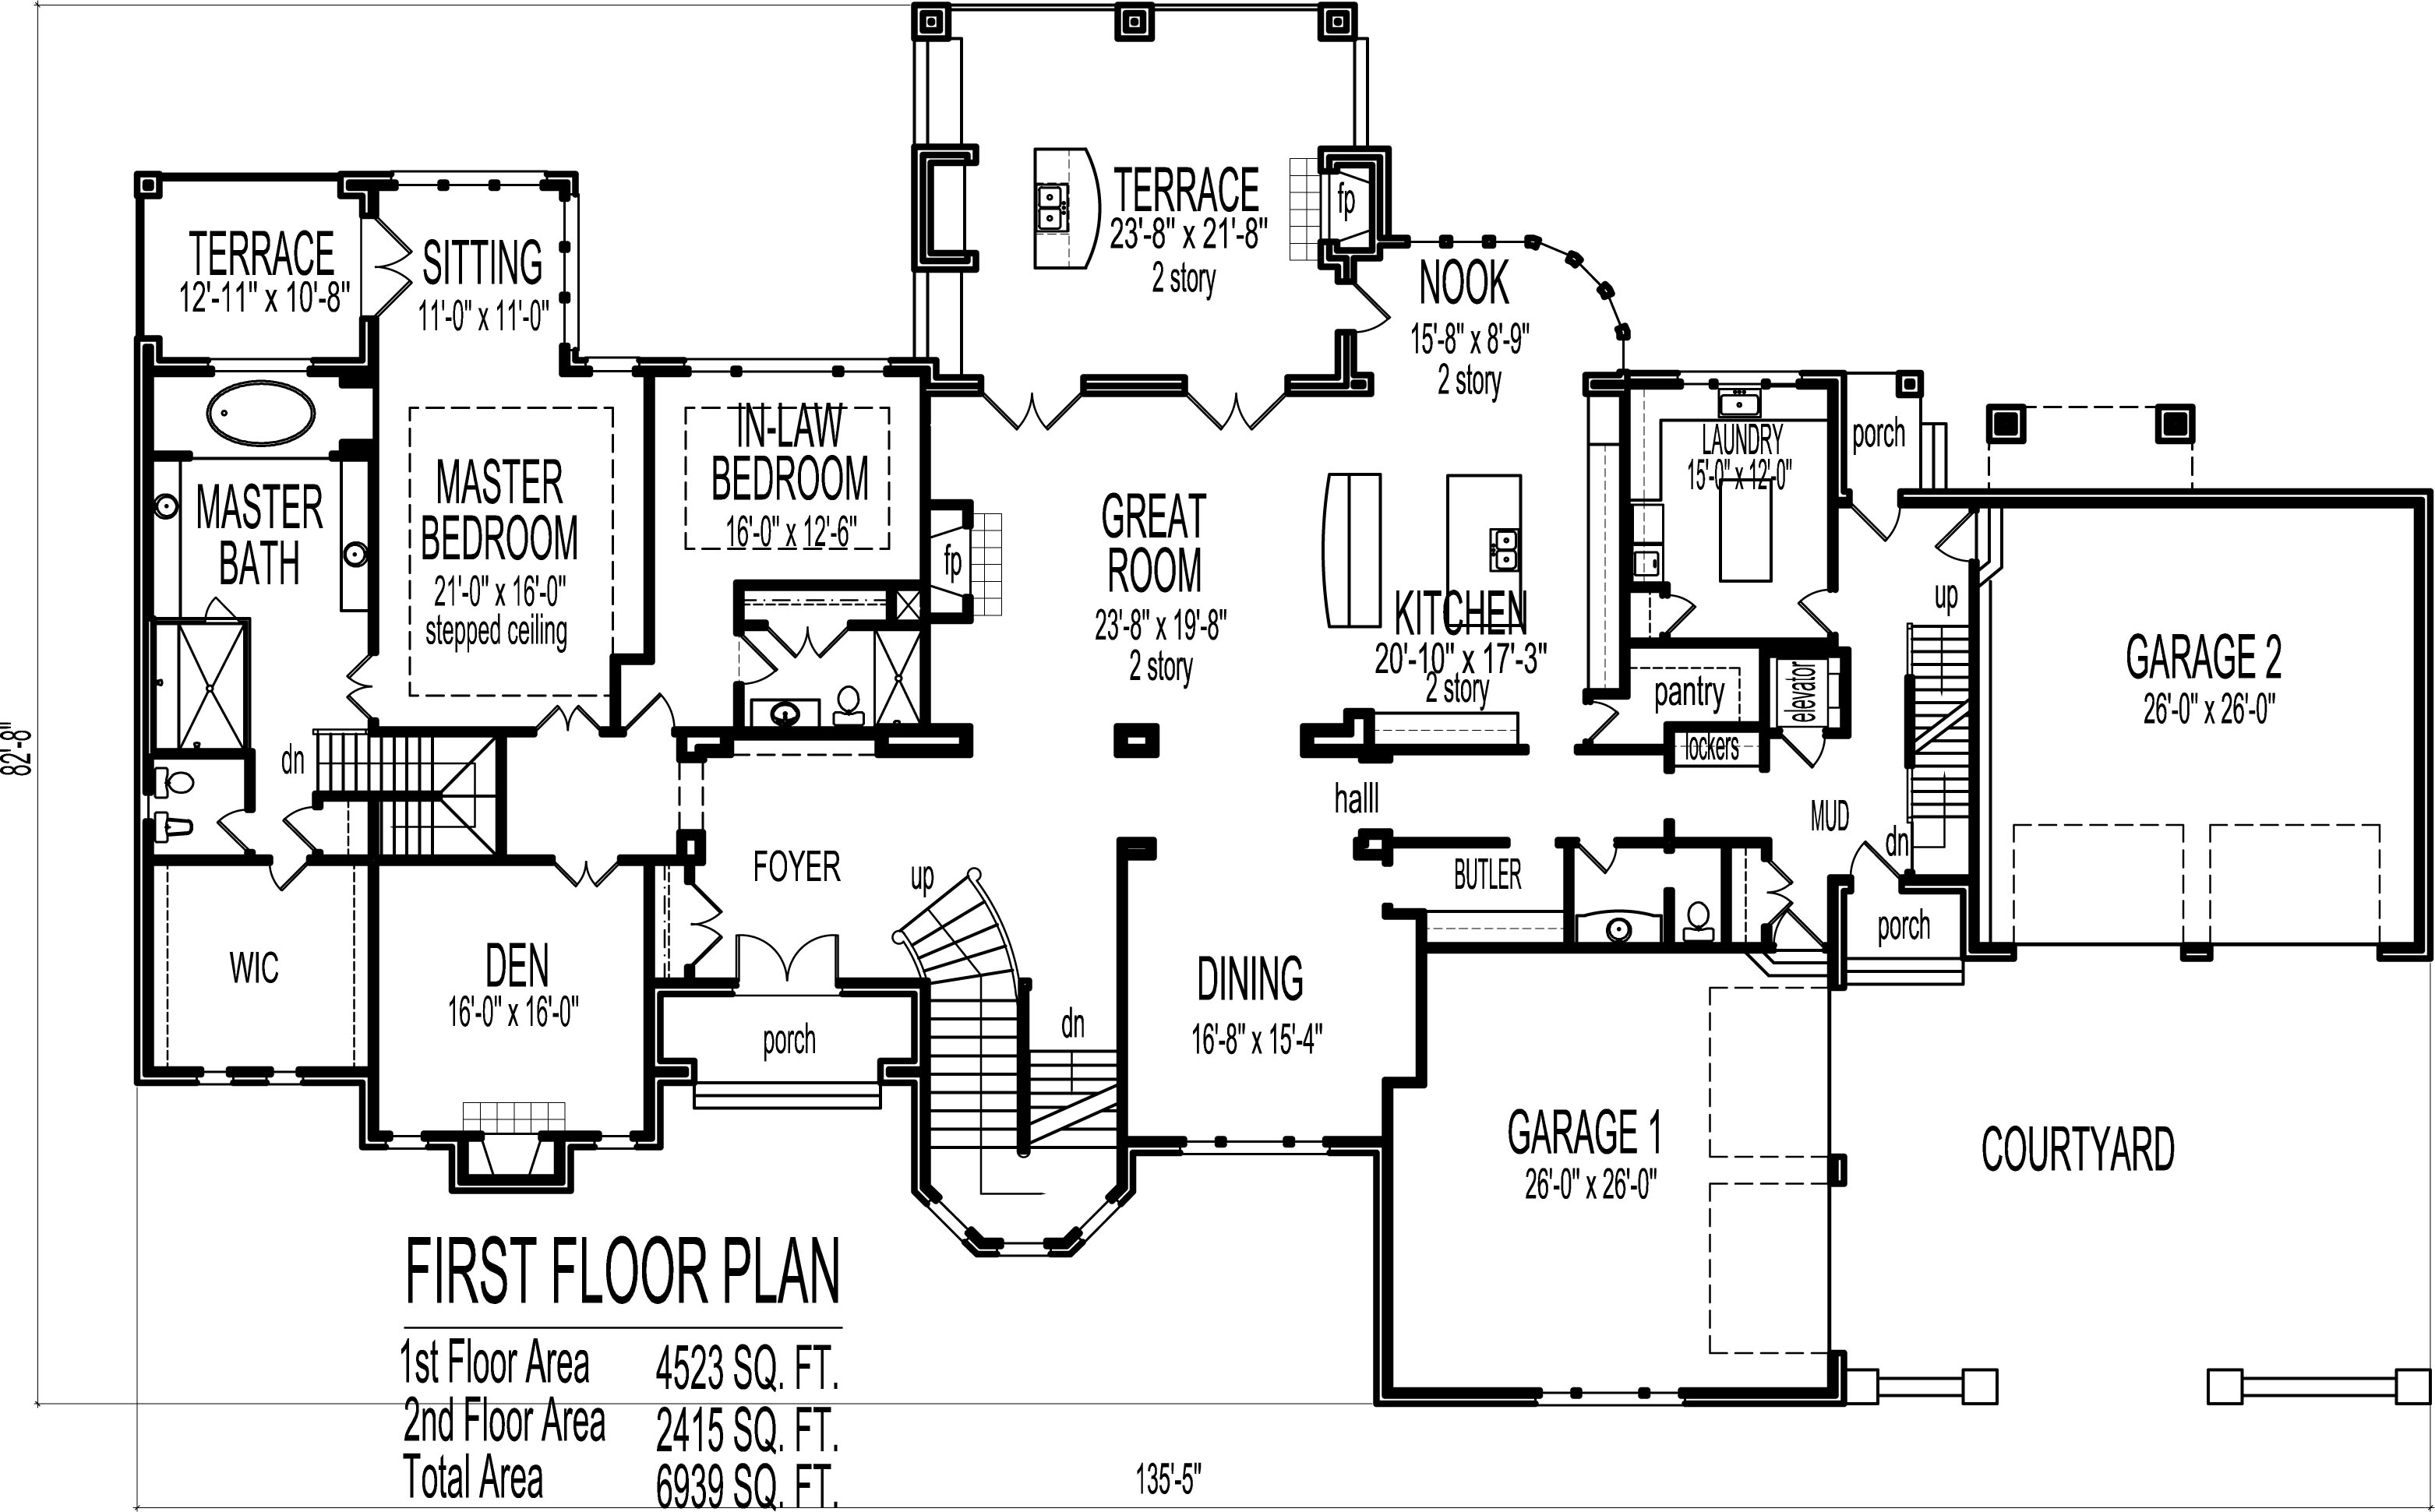 Dream house floor plans blueprints 2 story 5 bedroom large for Floor plans for 5 bedroom house